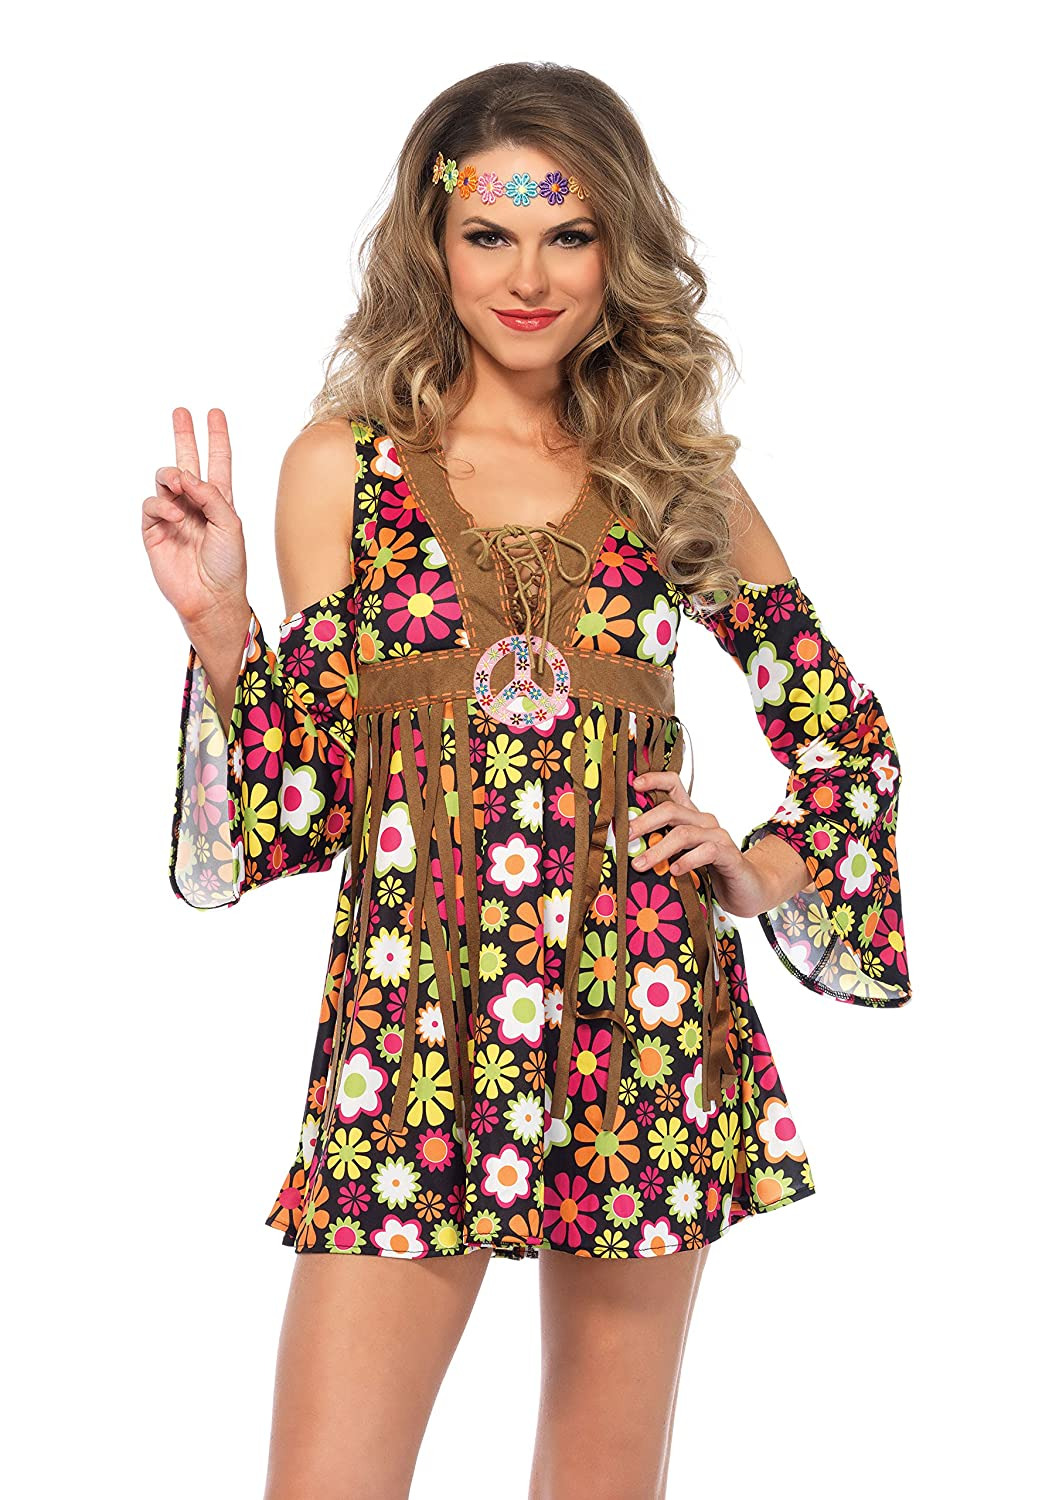 1960s Mad Men Dresses and Clothing Styles Leg Avenue Womens Starflower Hippie Costume $24.89 AT vintagedancer.com